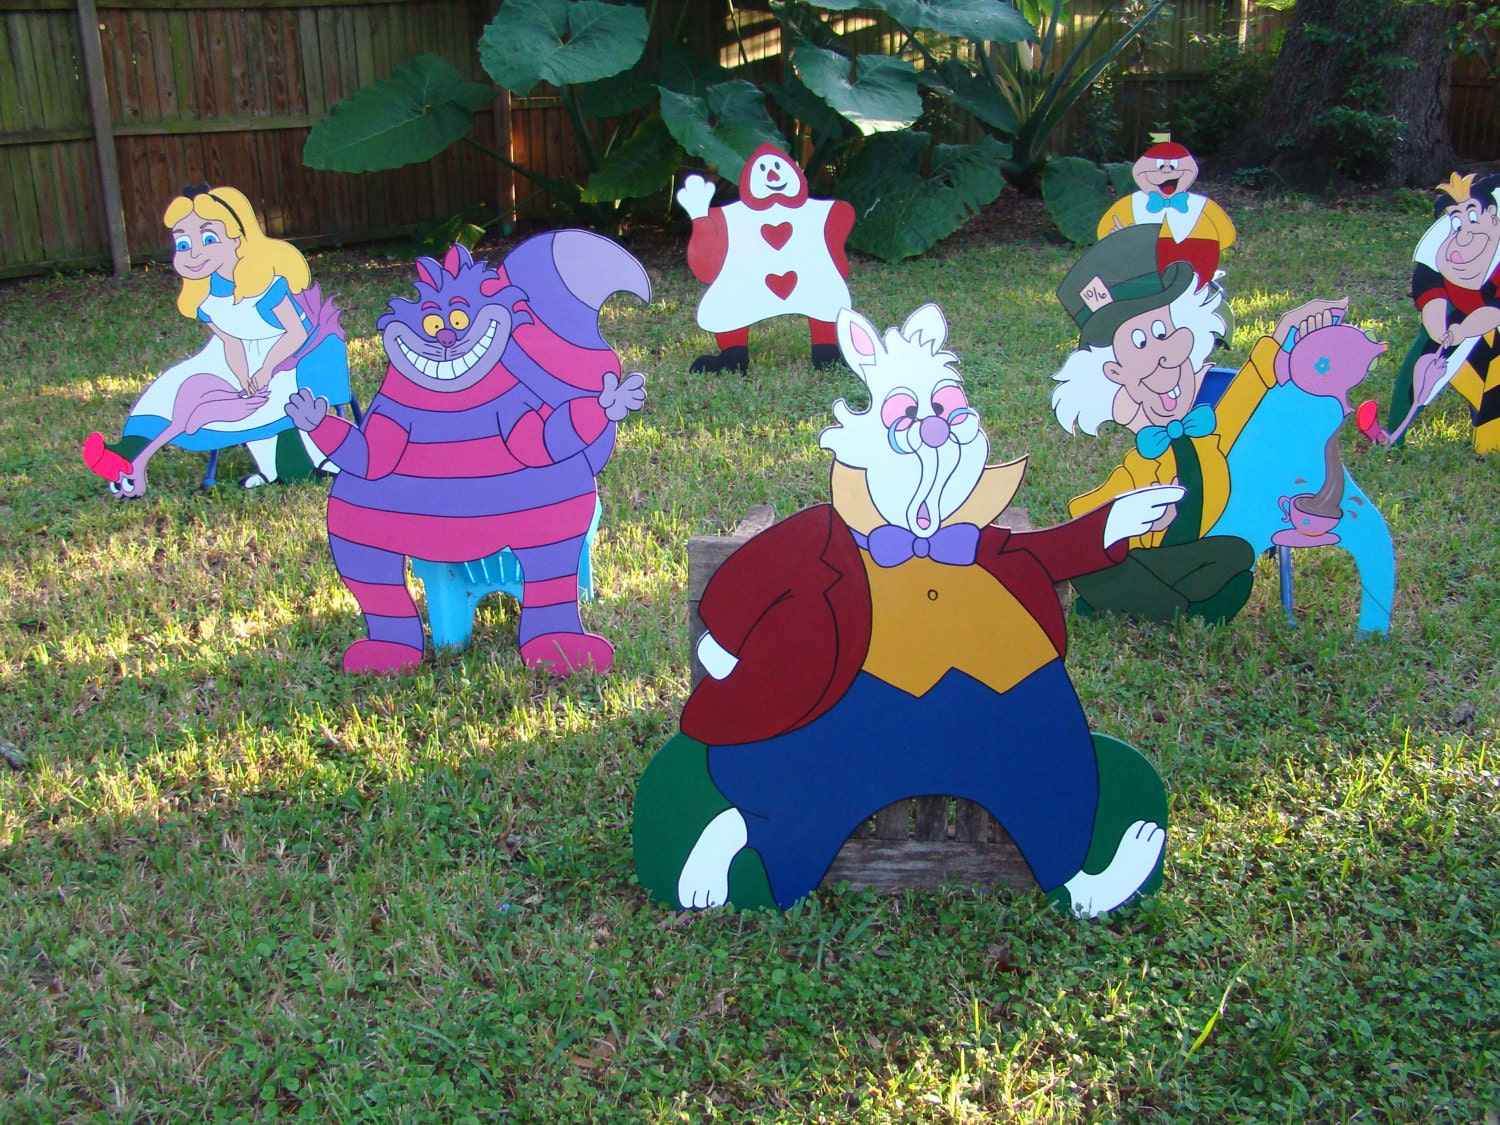 Mad hatter tea party decoration ideas -  Zoom